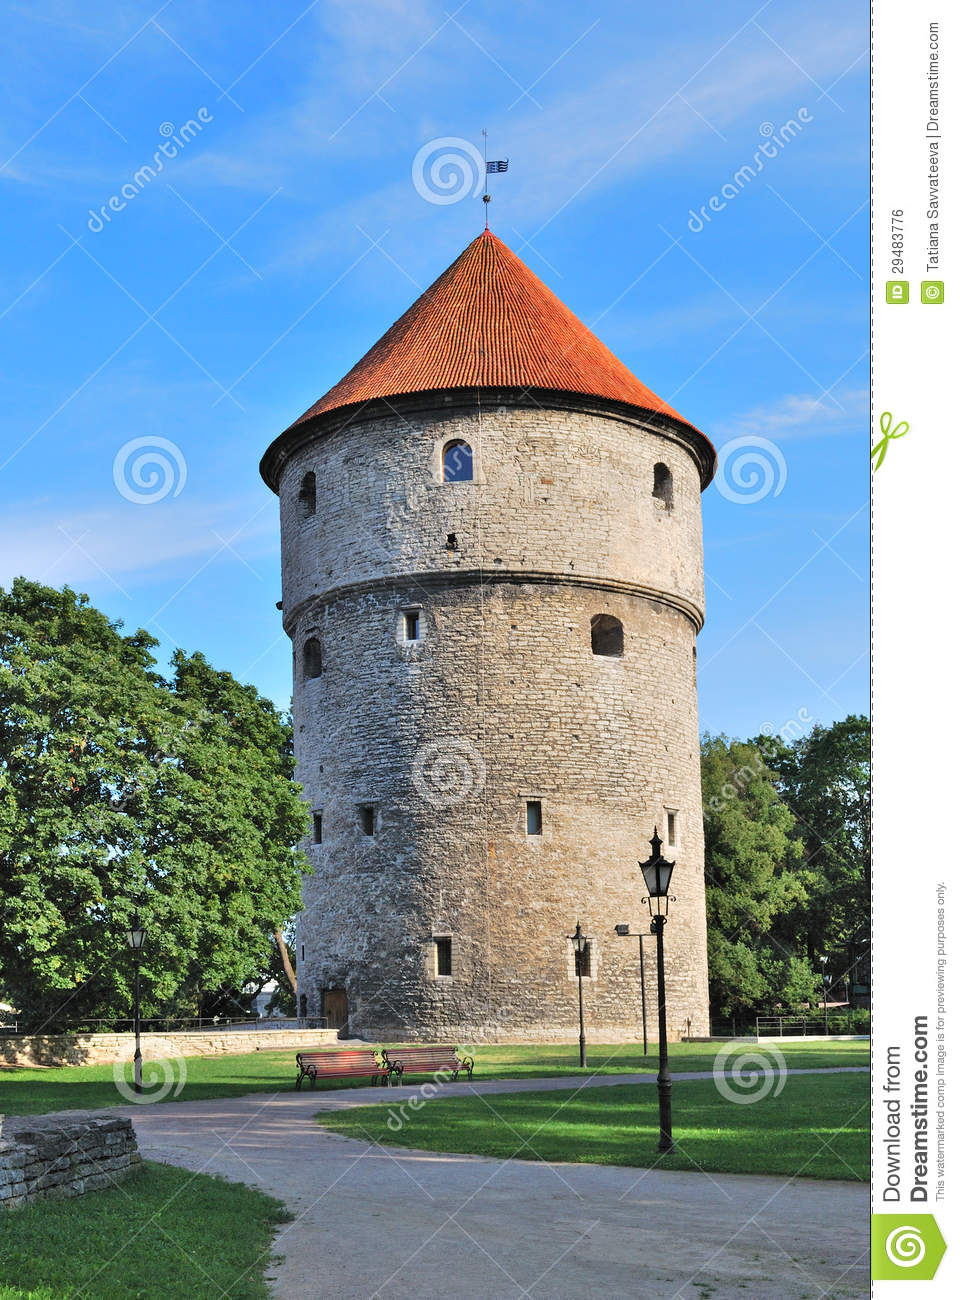 Tallinn, Estonia. Medieval Tower Kiek.